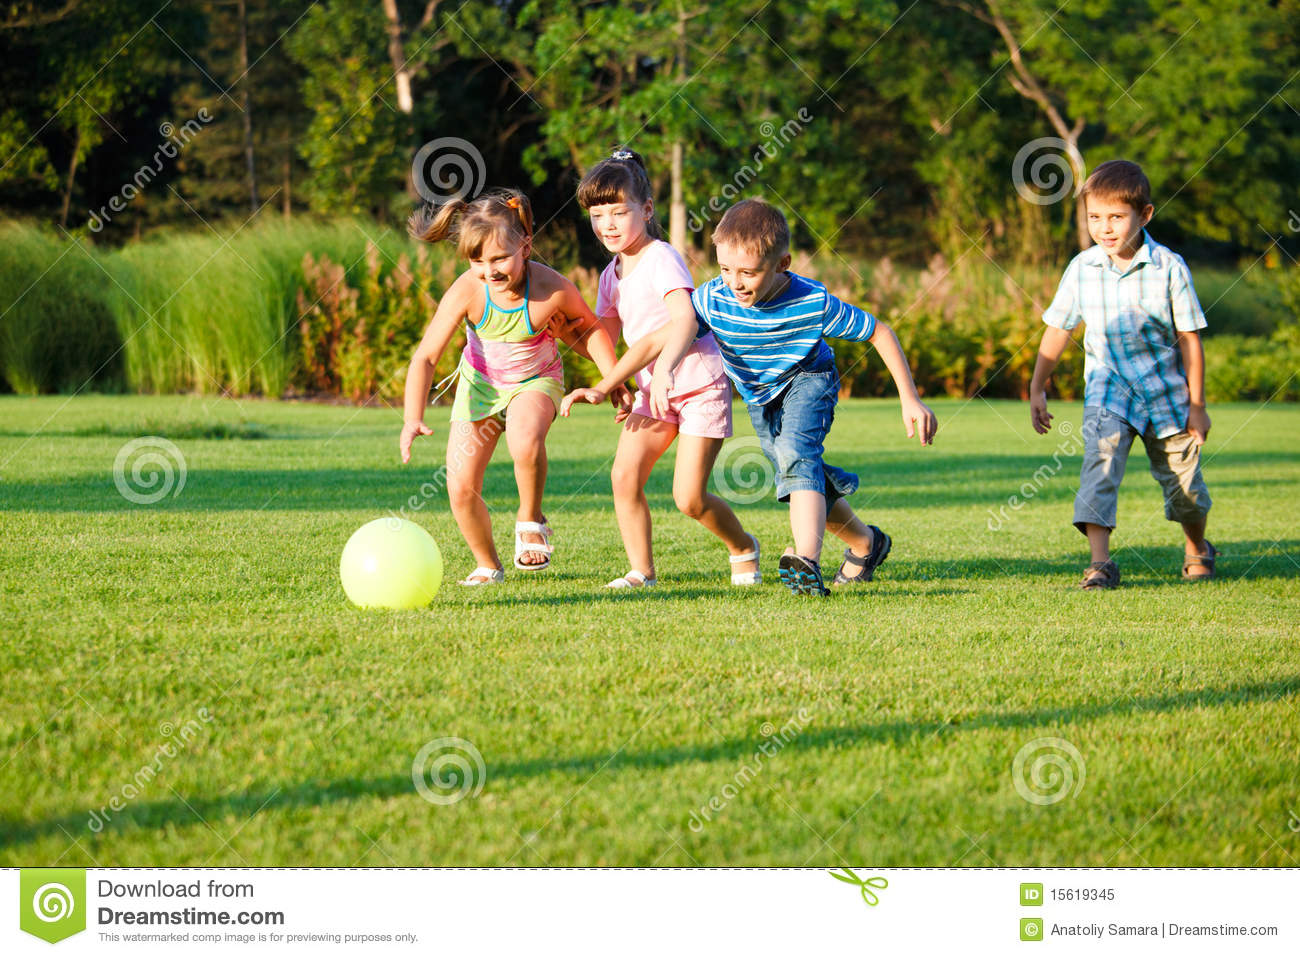 Kids with ball